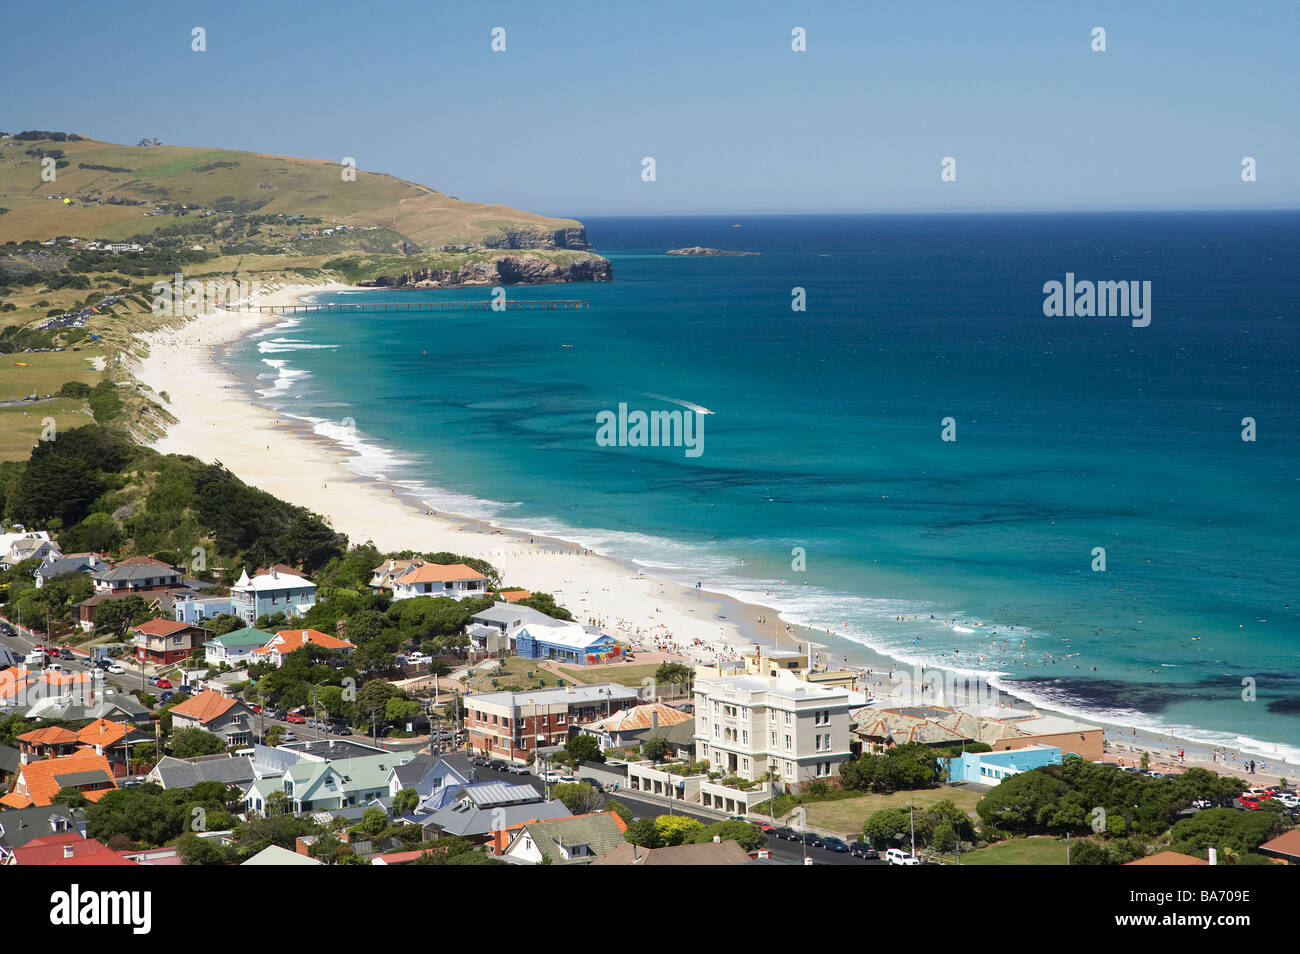 St Kilda and St Clair Beaches Dunedin Otago South Island New Zealand - Stock Image